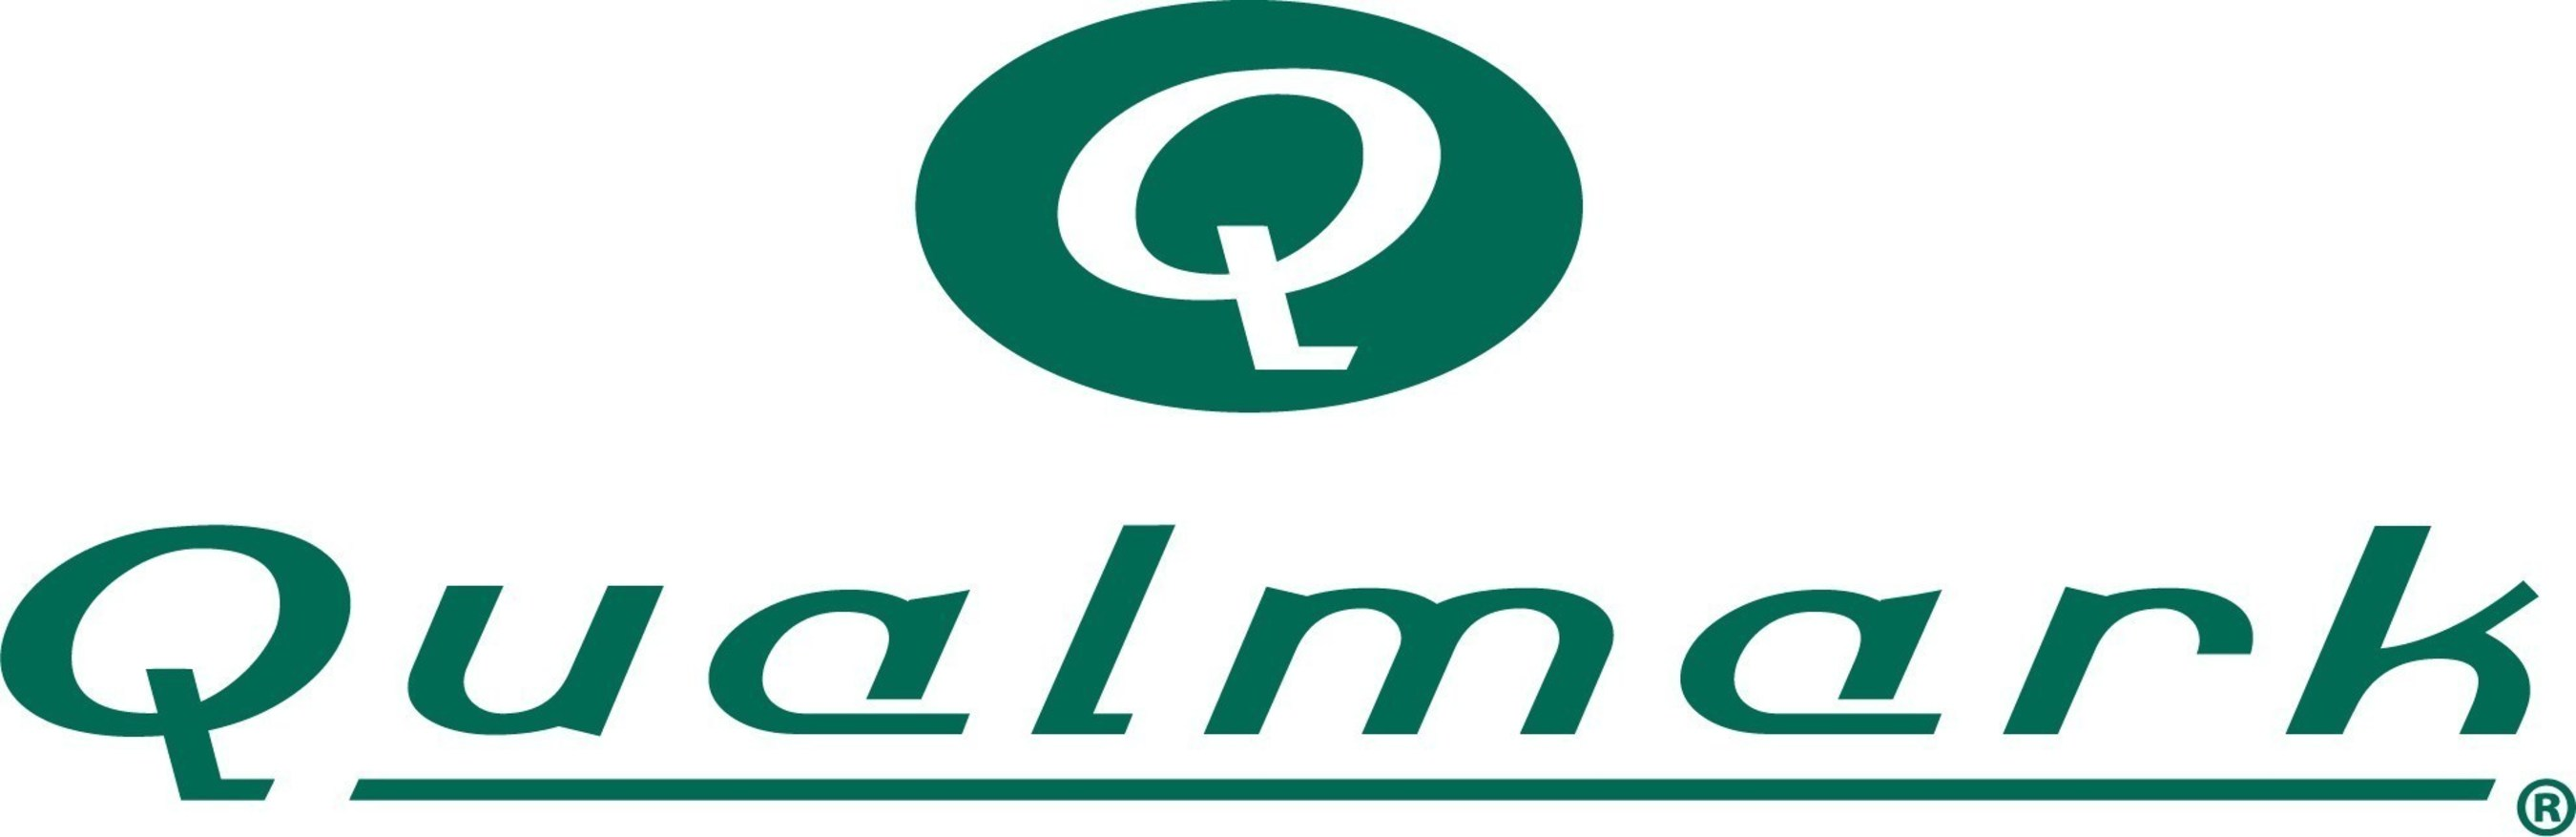 Qualmark Corporation has been one of the leading manufacturers of accelerated reliability test equipment worldwide since pioneering the technology in the early 1990s. The company is now a wholly owned and independently operated subsidiary of ESPEC Corporation.